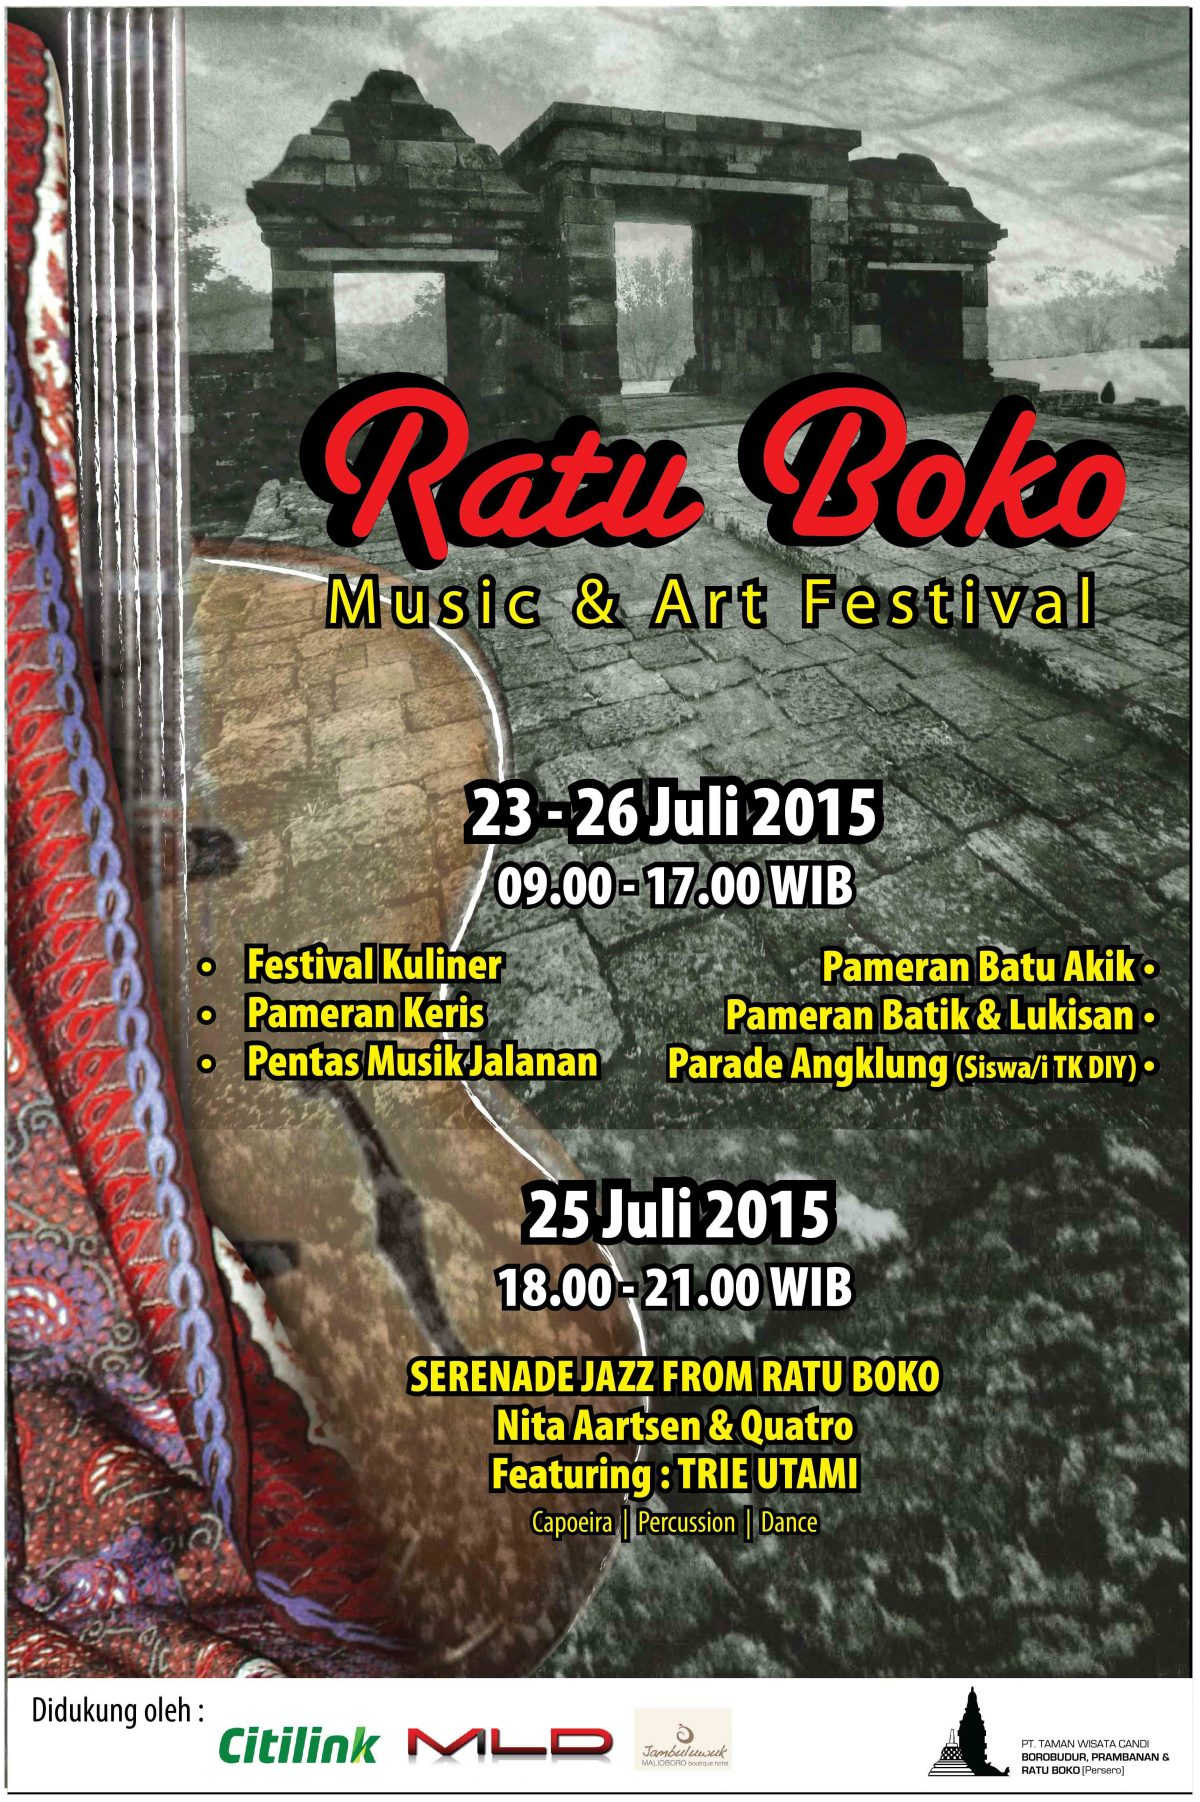 Ratu Boko Music And Art Festival 2015 Taman Wisata Candi